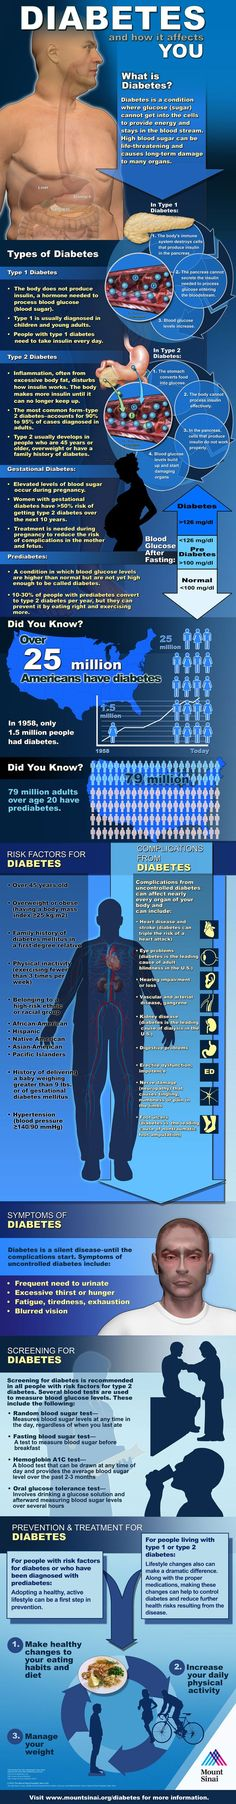 Diabetes And How It Affects You Infographic                                                                                                                                                      More